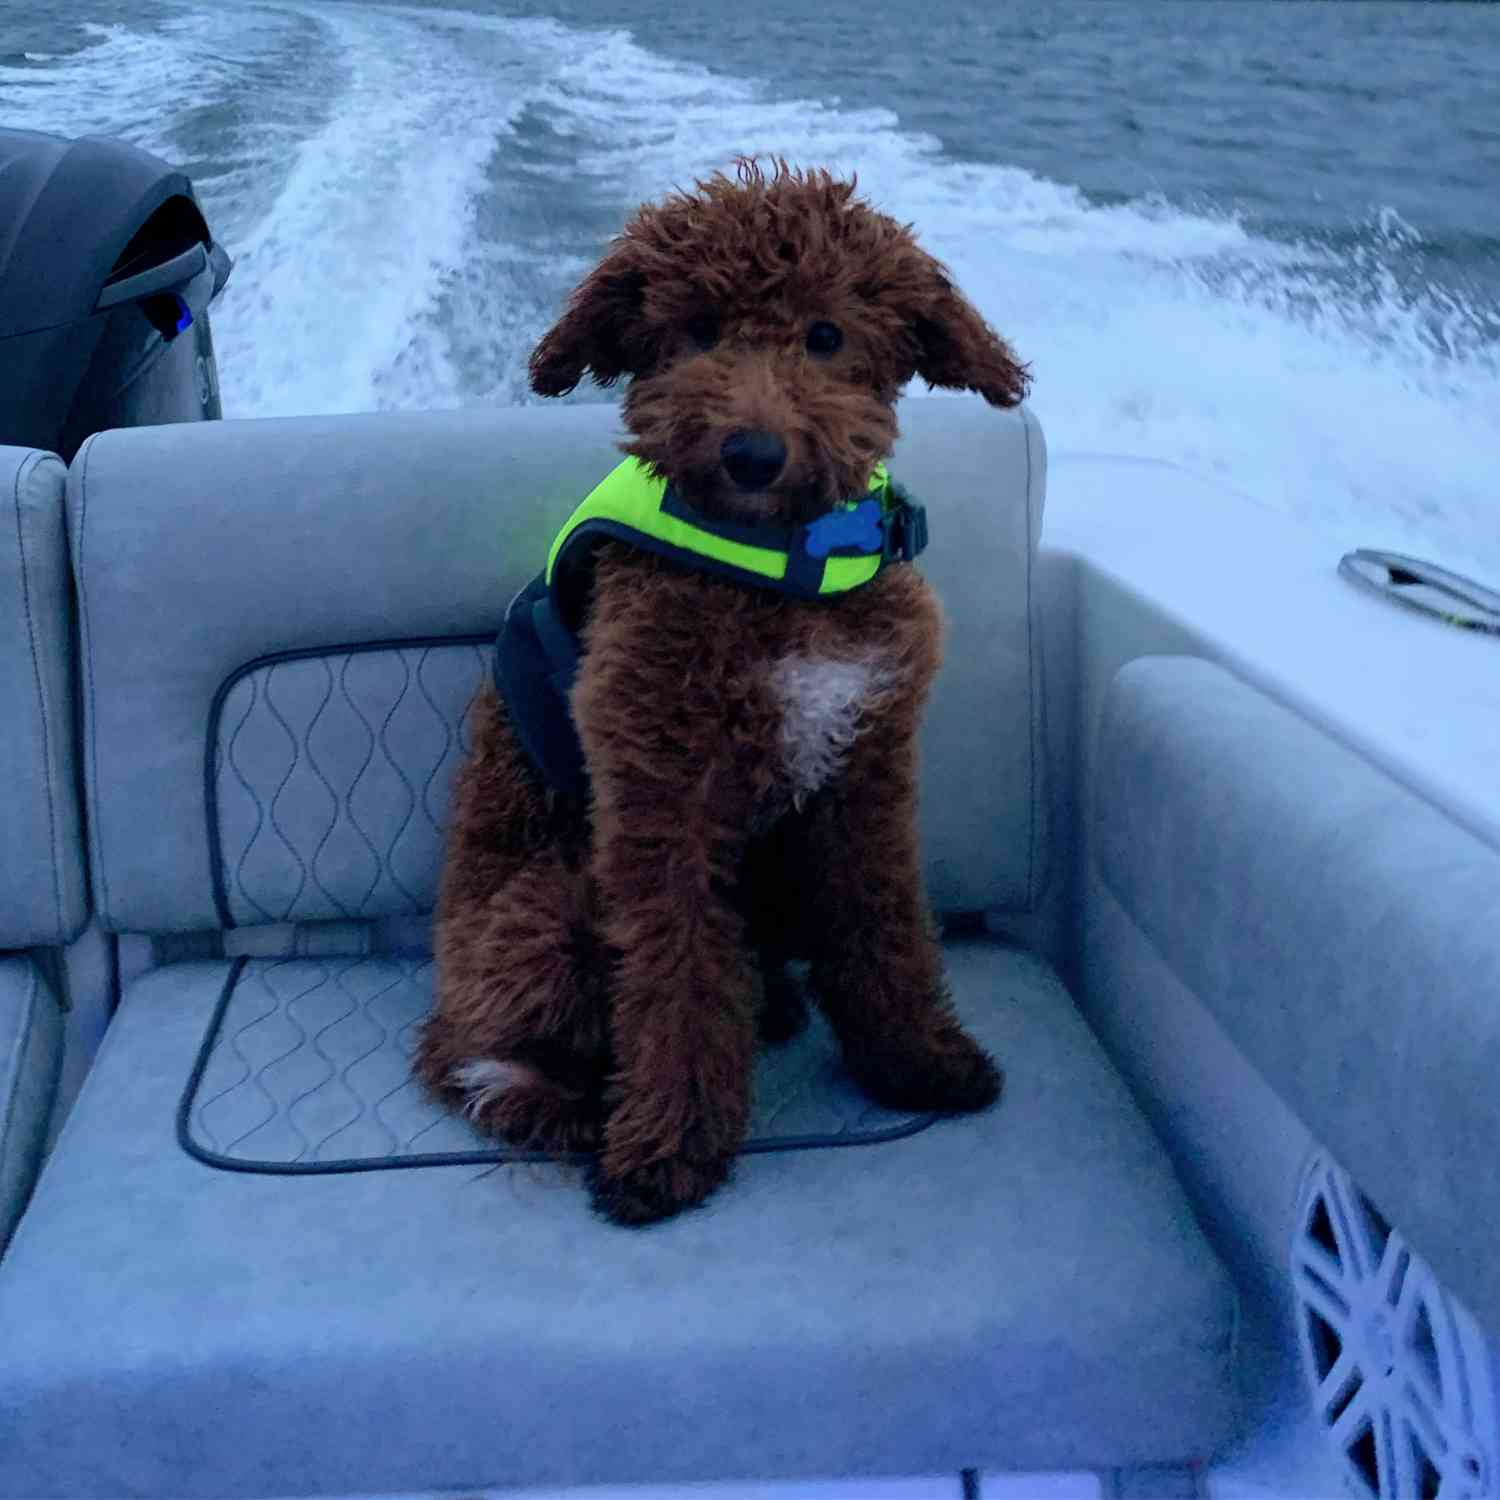 Title: Winston on the maiden voyage - On board their Sportsman Heritage 231 Center Console - Location: Tampa. Participating in the Photo Contest #SportsmanAugust2020